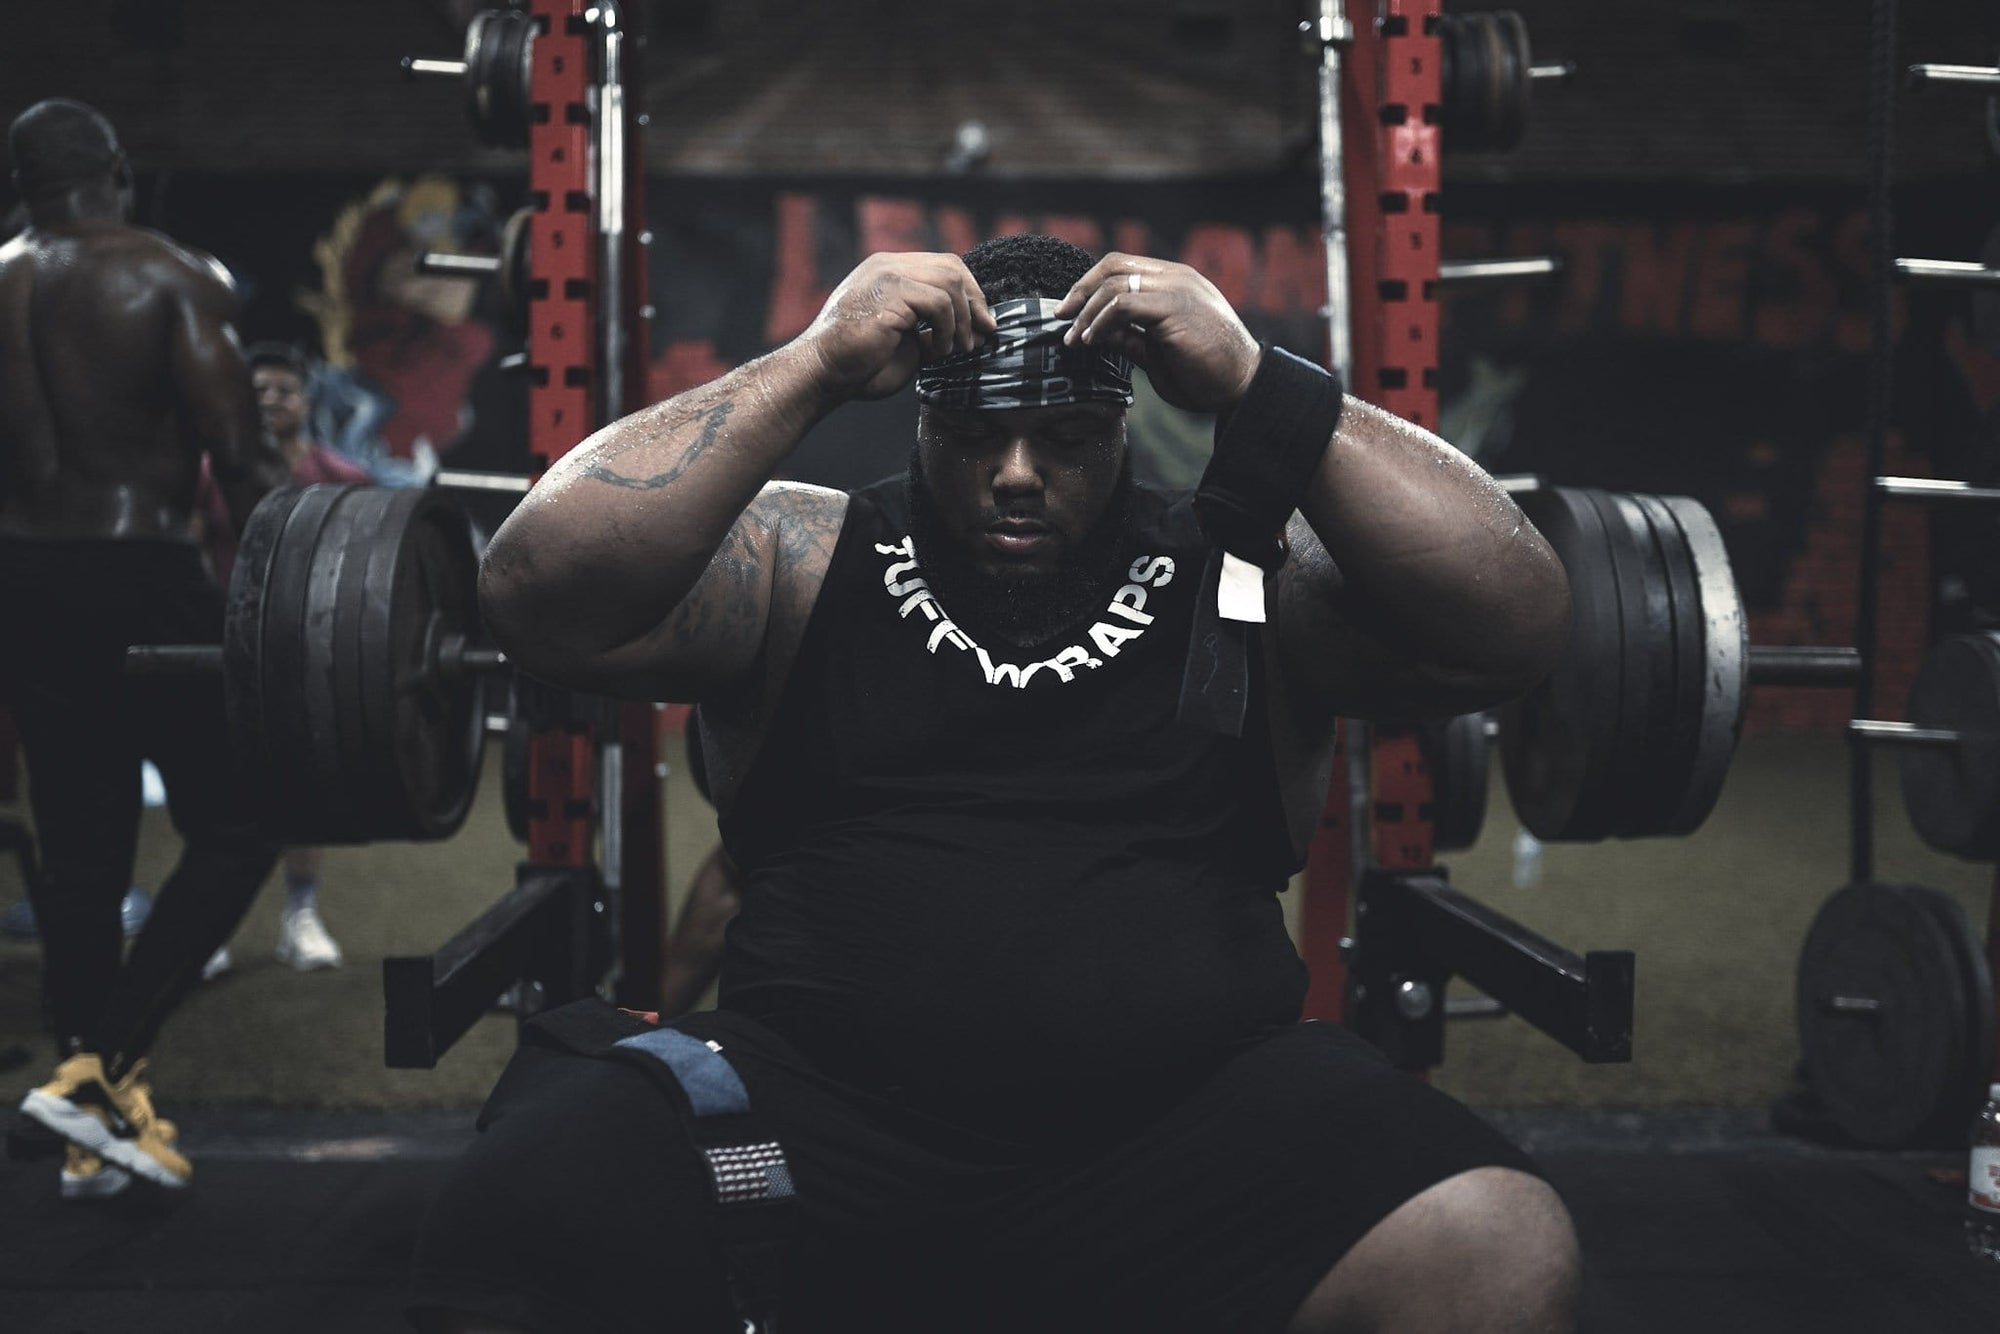 Julius Maddox Does The Impossible, 700 lb Bench Press for 3 Reps!